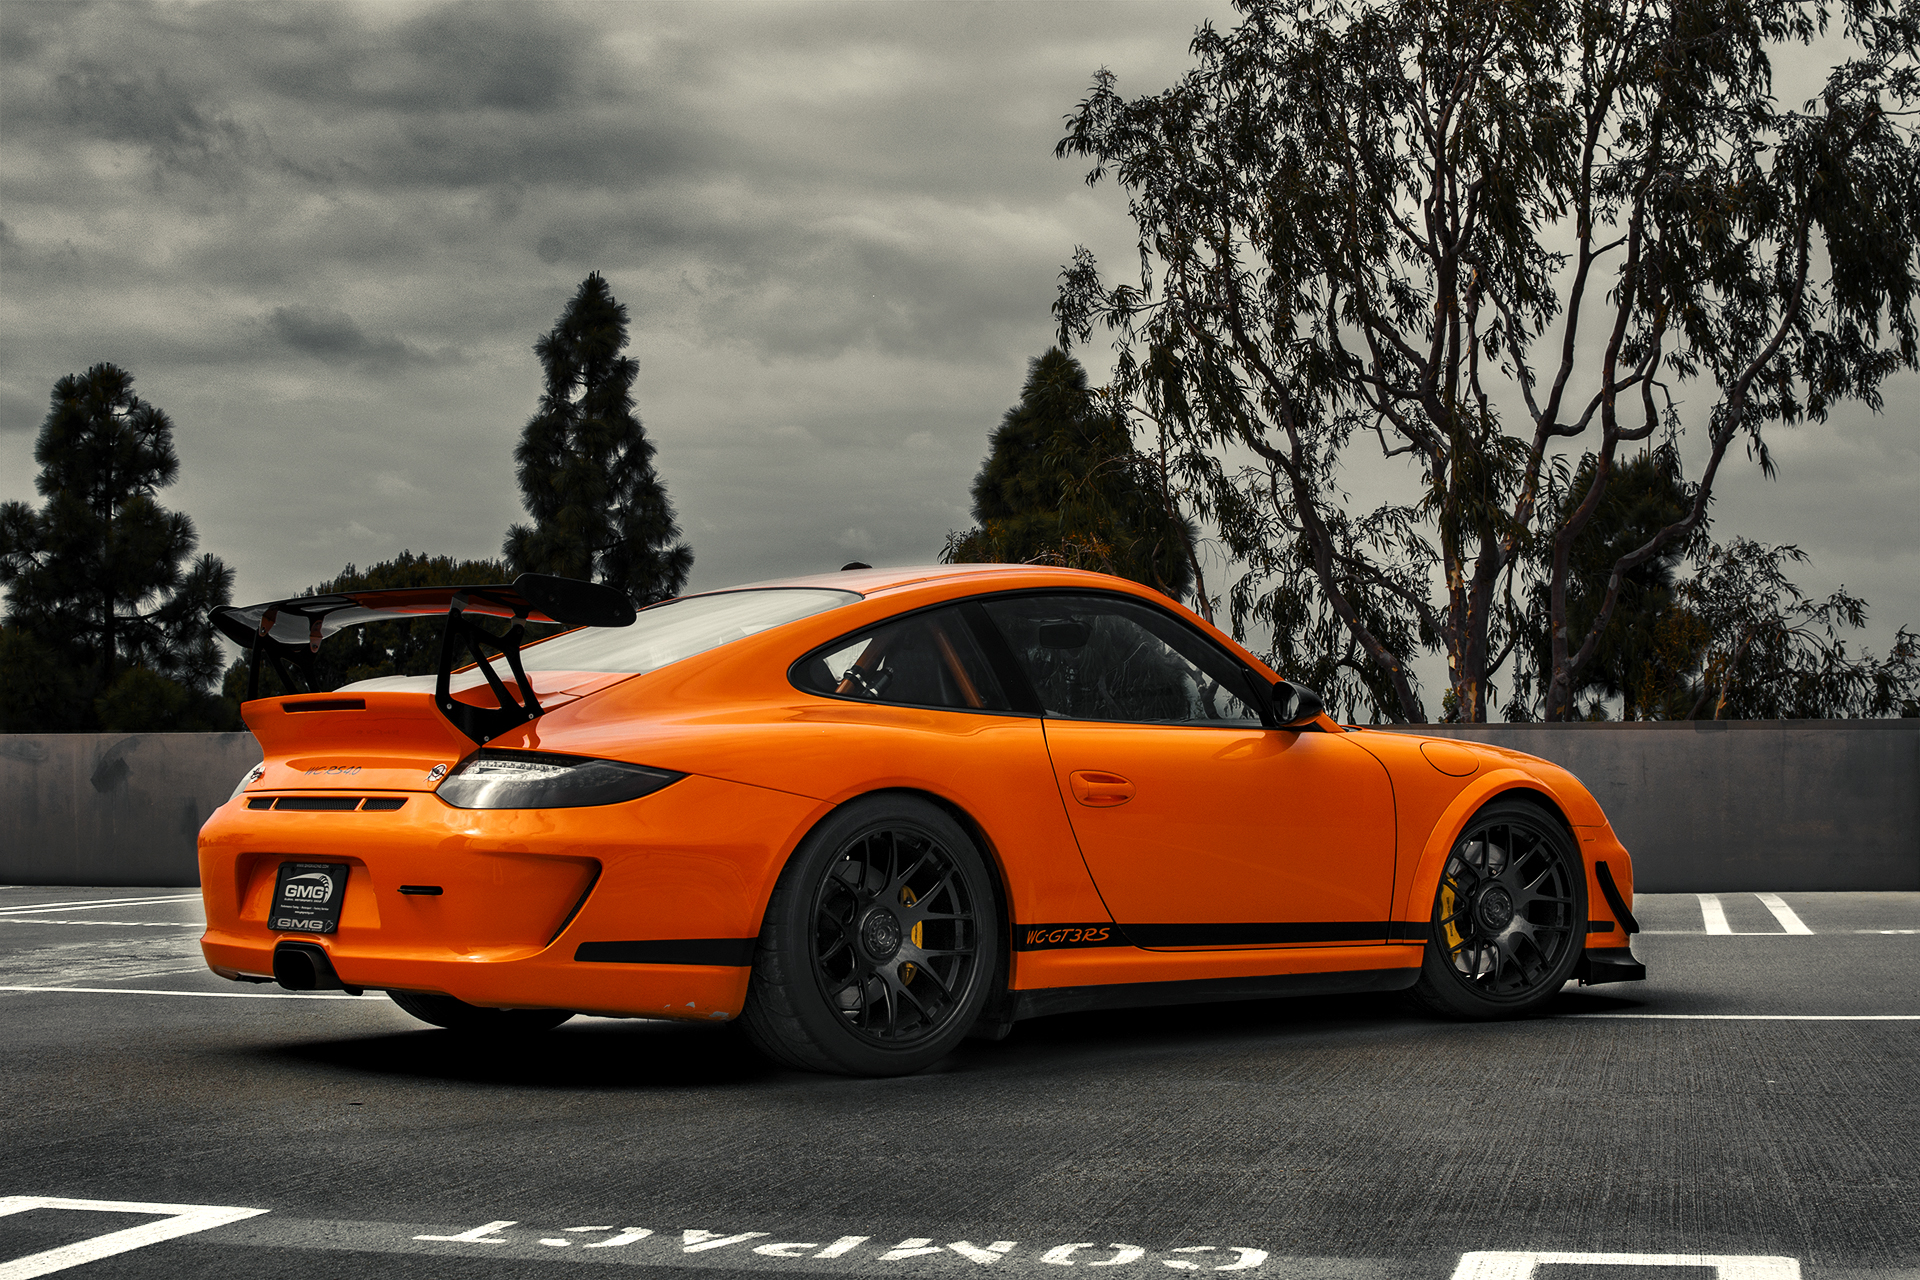 orange porsche 911 gt3 rs by gmg racing gtspirit. Black Bedroom Furniture Sets. Home Design Ideas